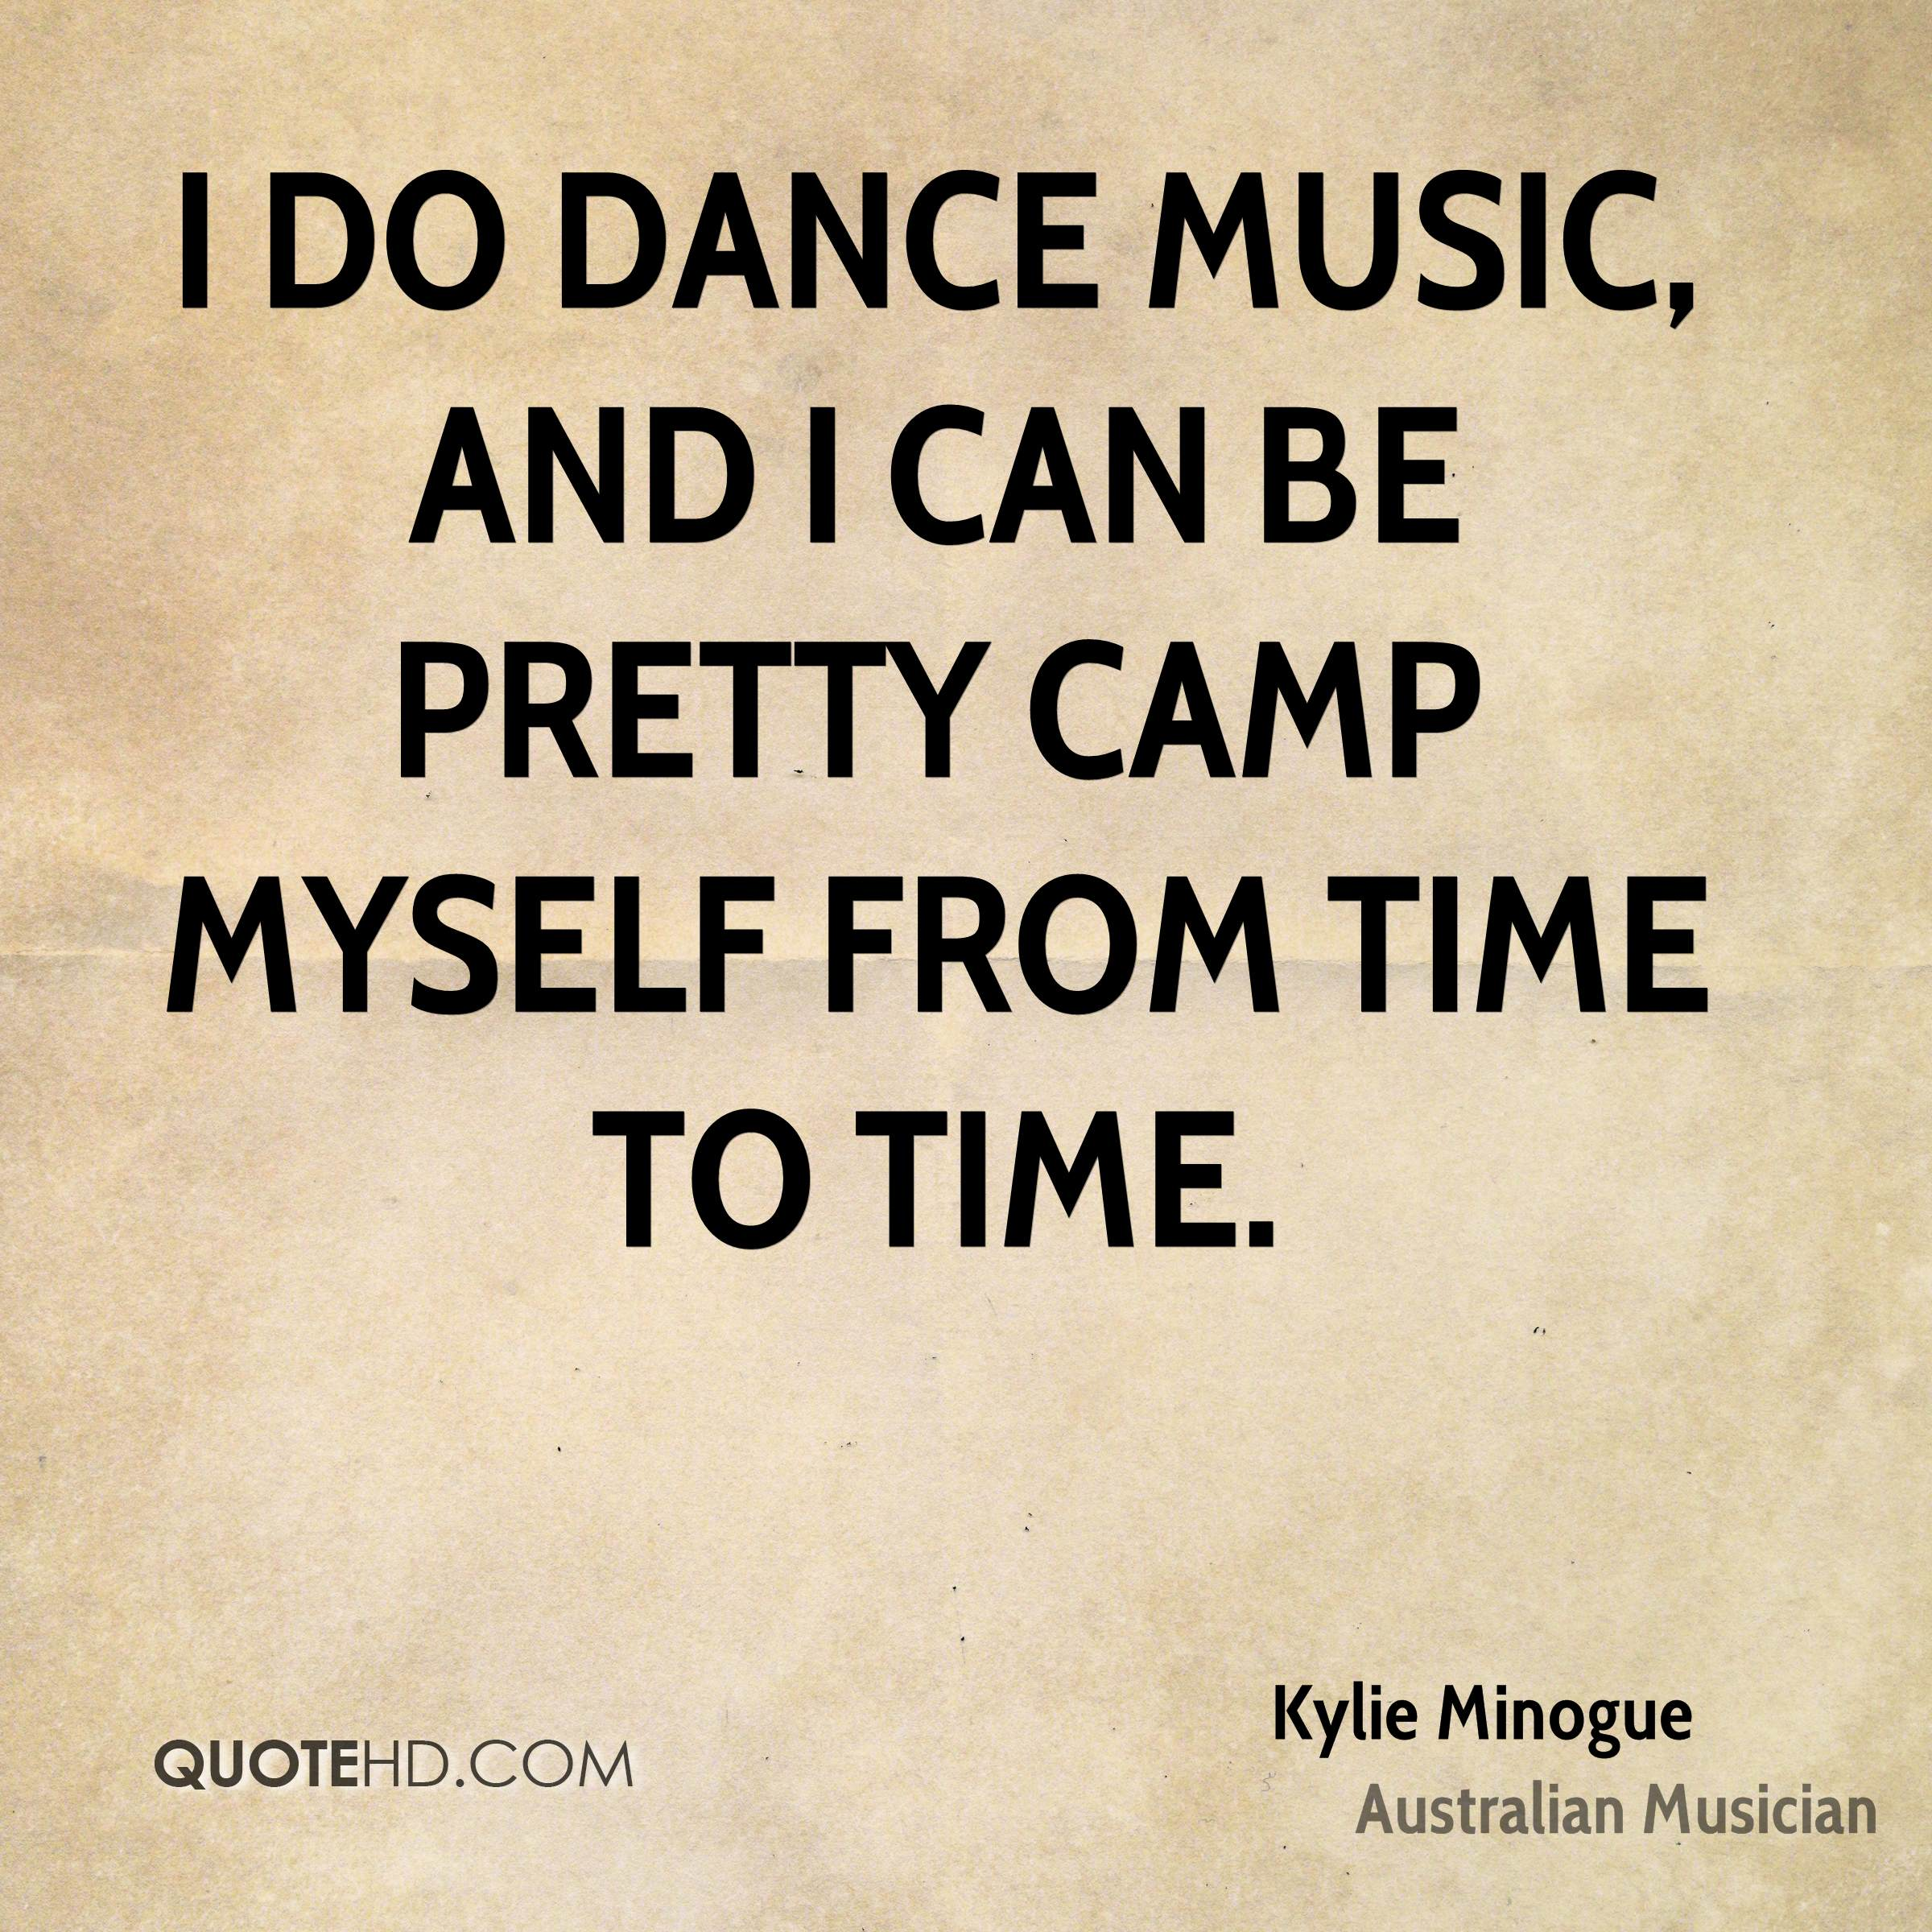 I do dance music, and I can be pretty camp myself from time to time.